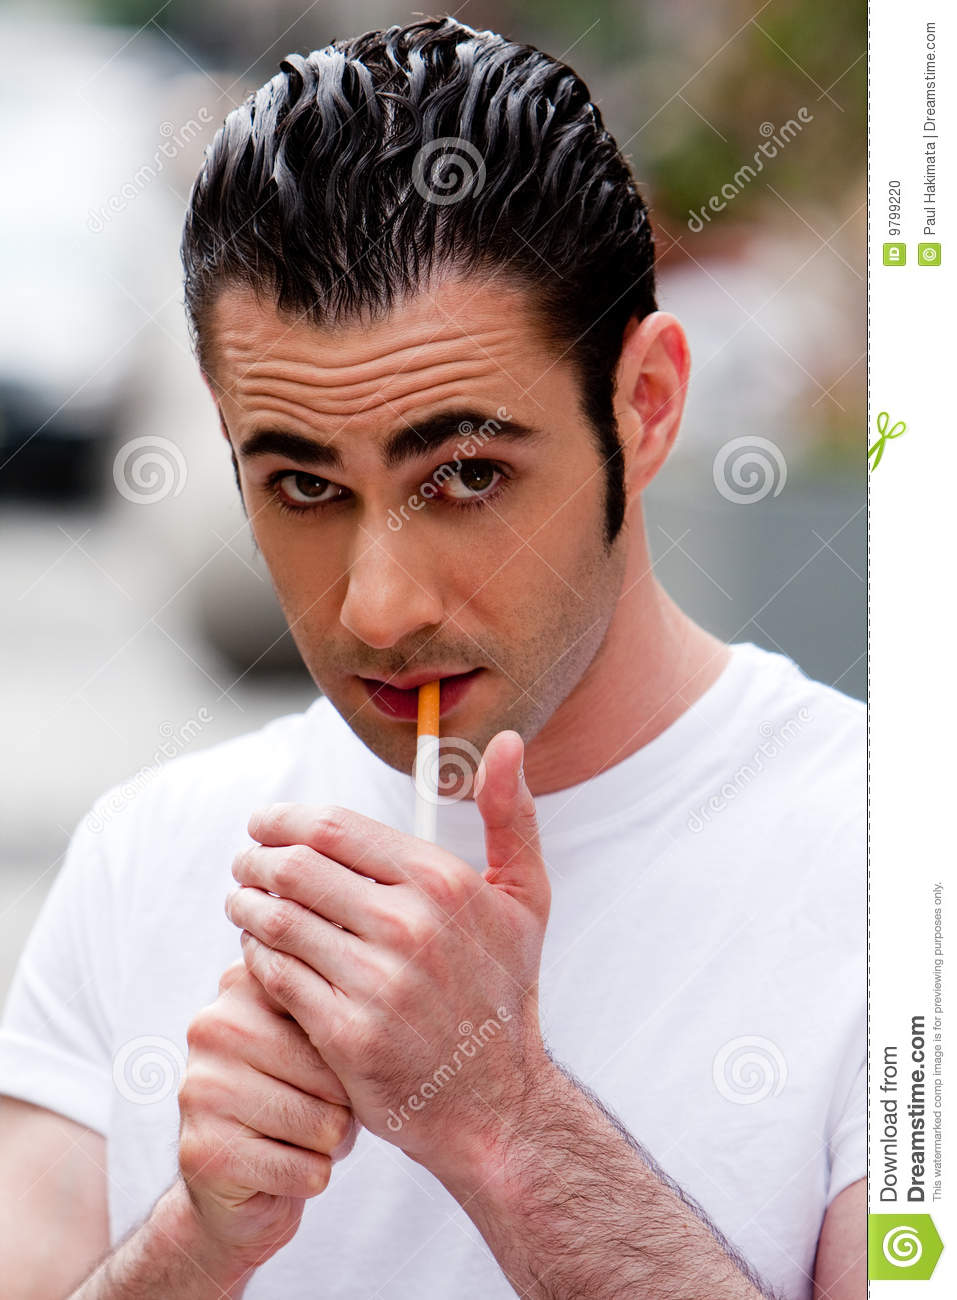 Man Lighting Cigarette Stock Photo Image 9799220